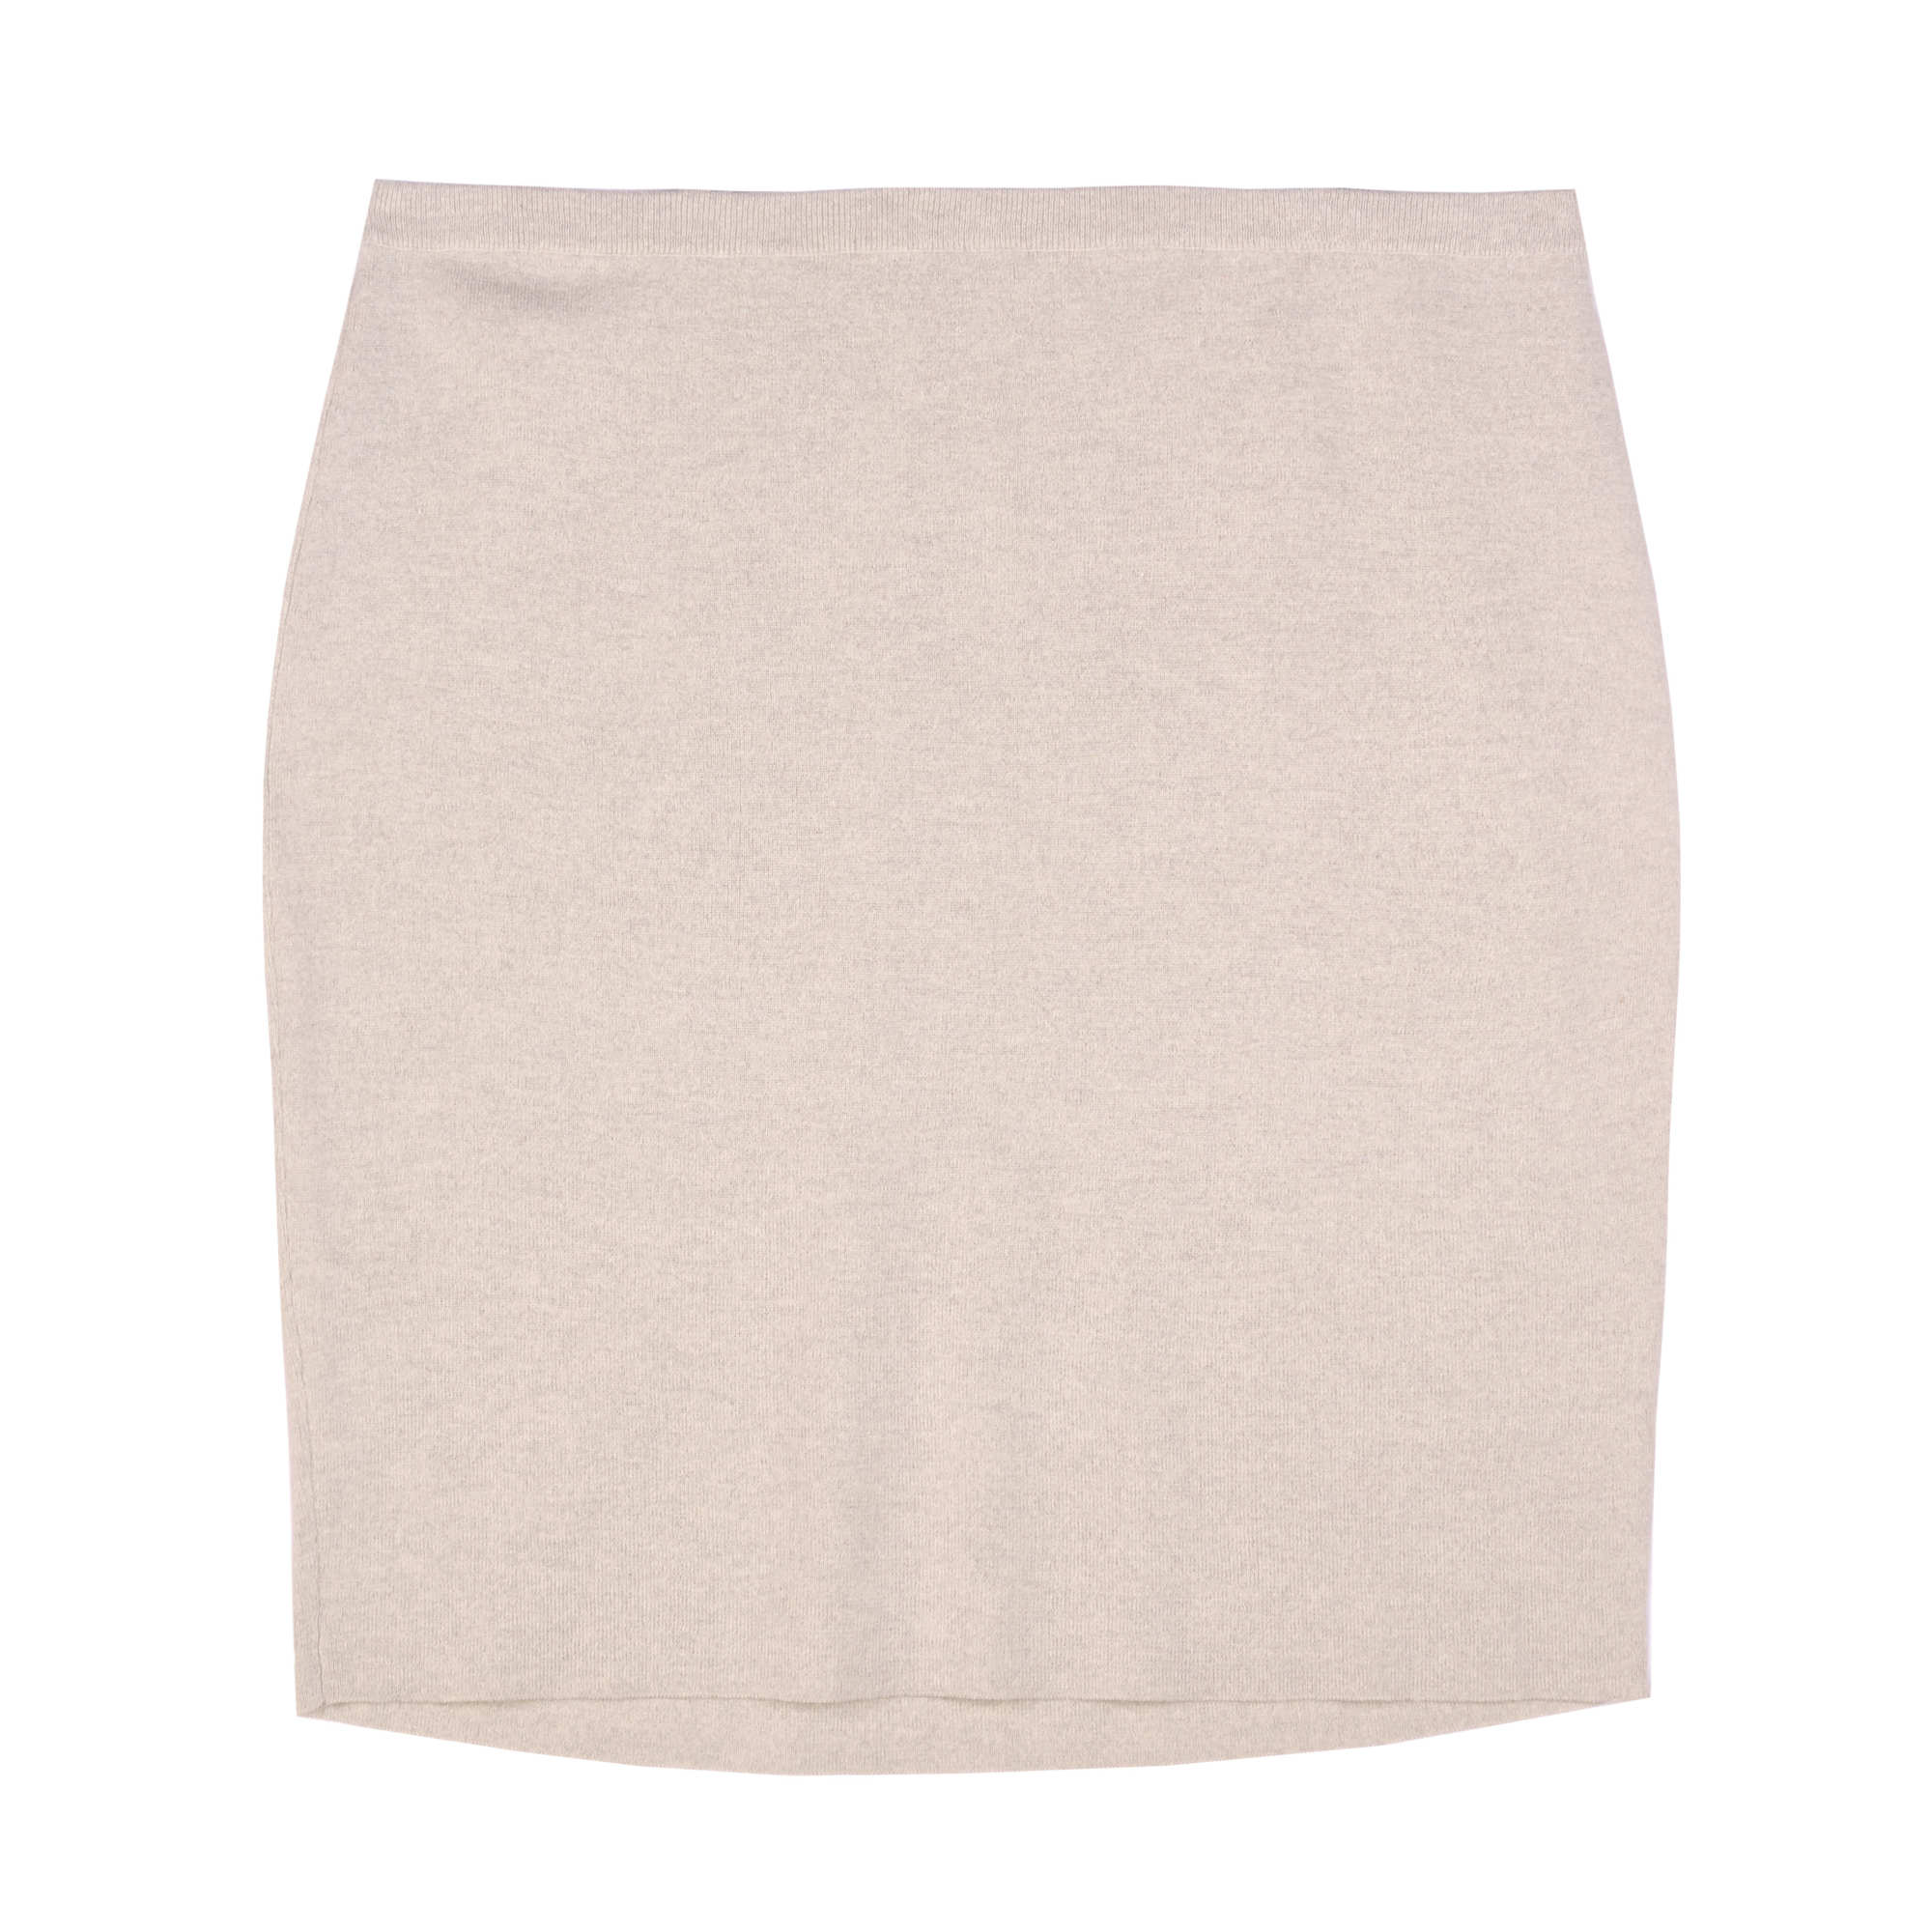 Washable Wool Crepe Skirt